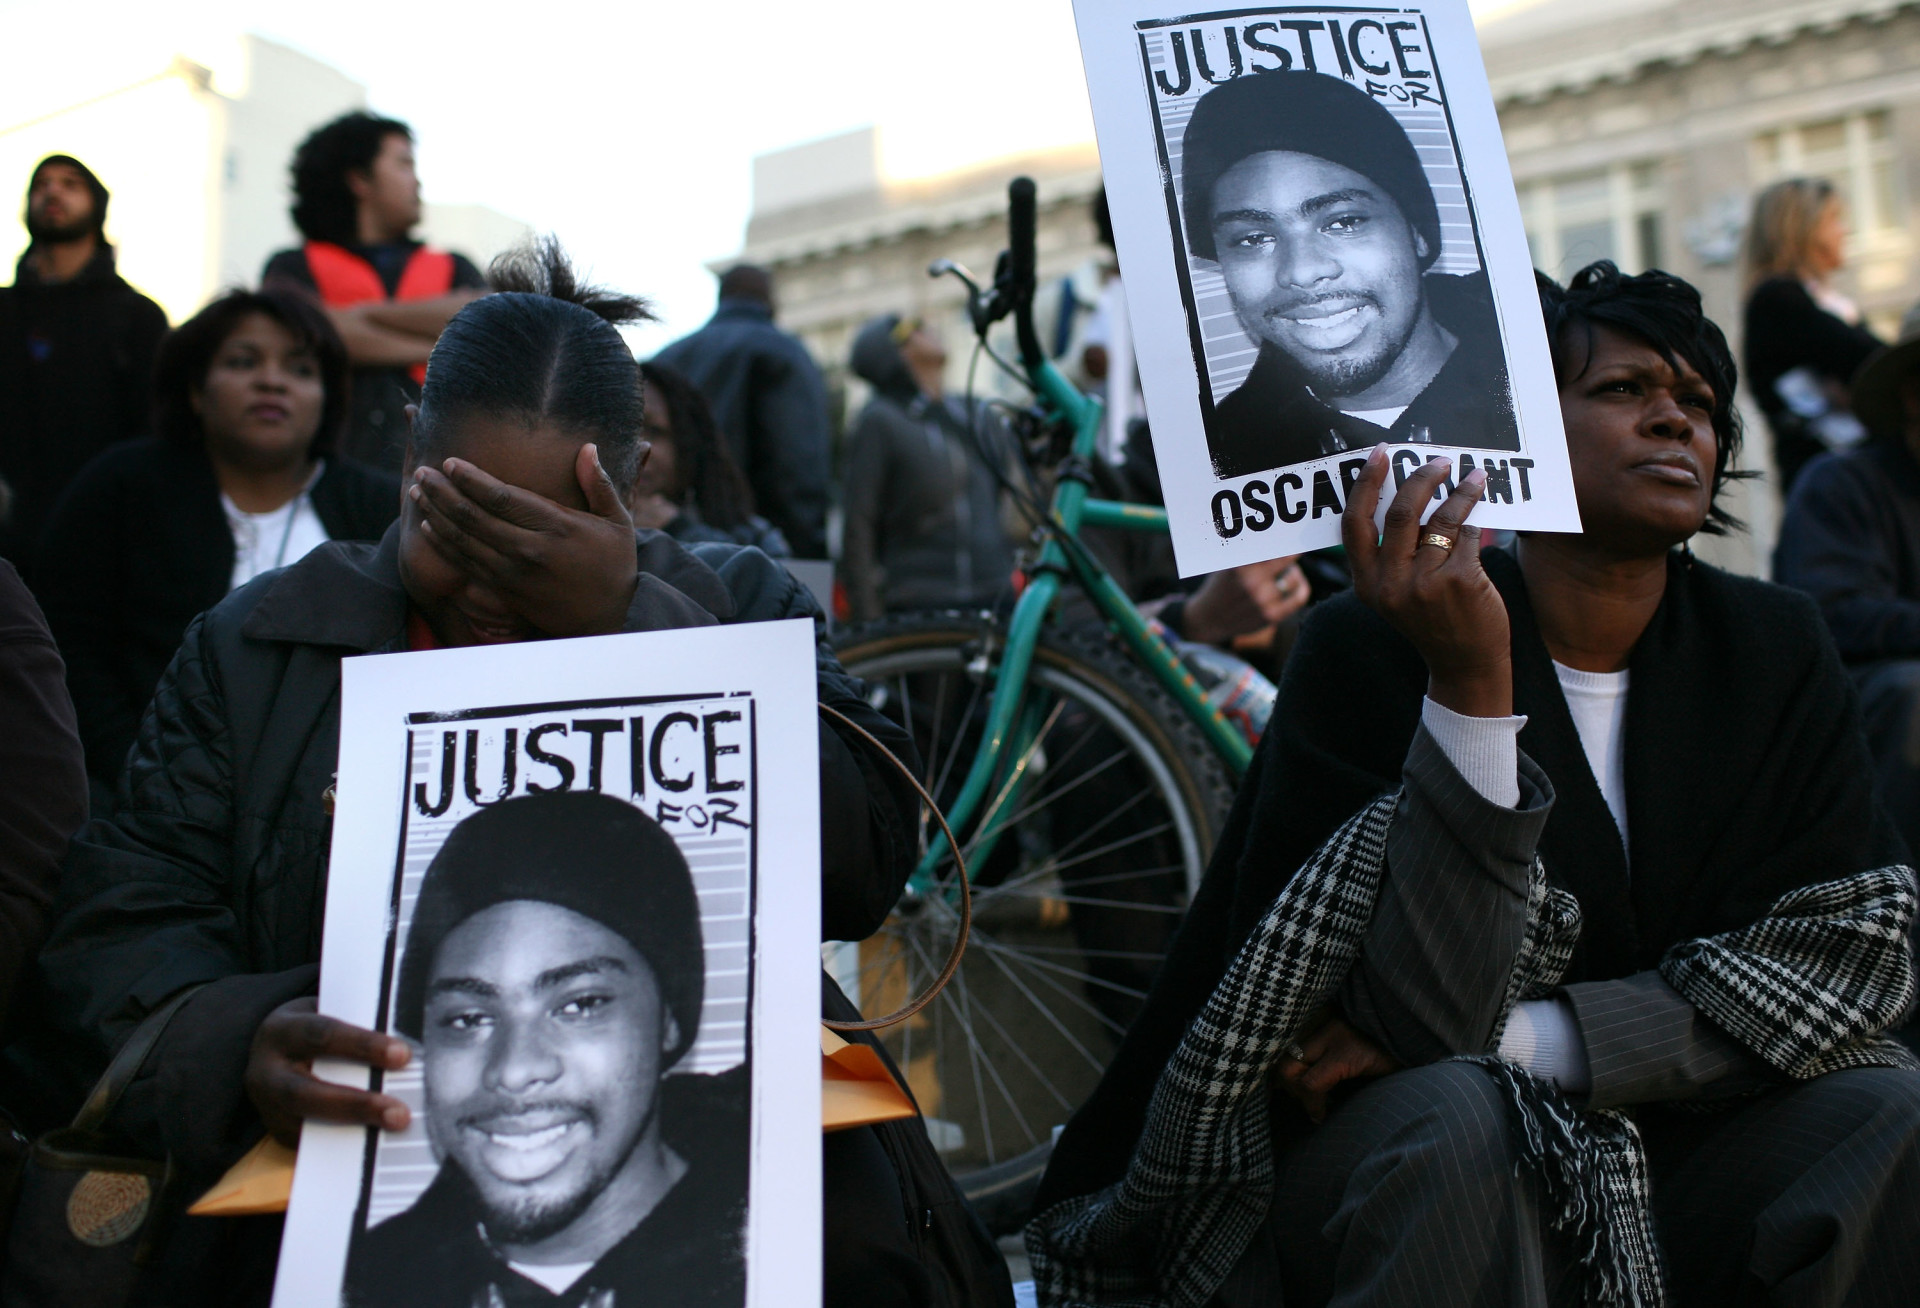 Jury Rejects Lawsuit by Oscar Grant's Father